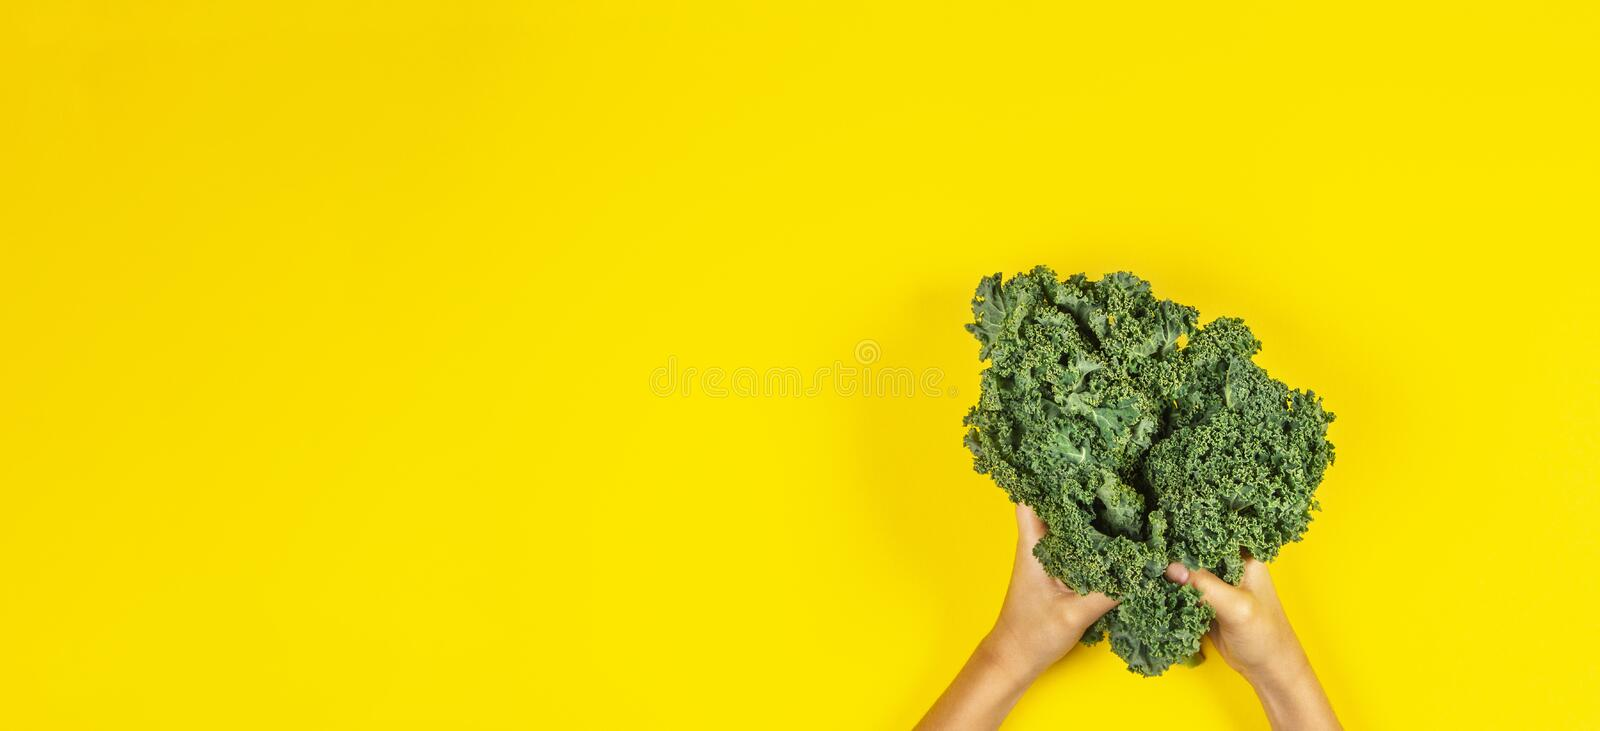 Hands holding bunch of kale leaves over yellow background. Hands holding a bunch of kale leaves over yellow background stock photos